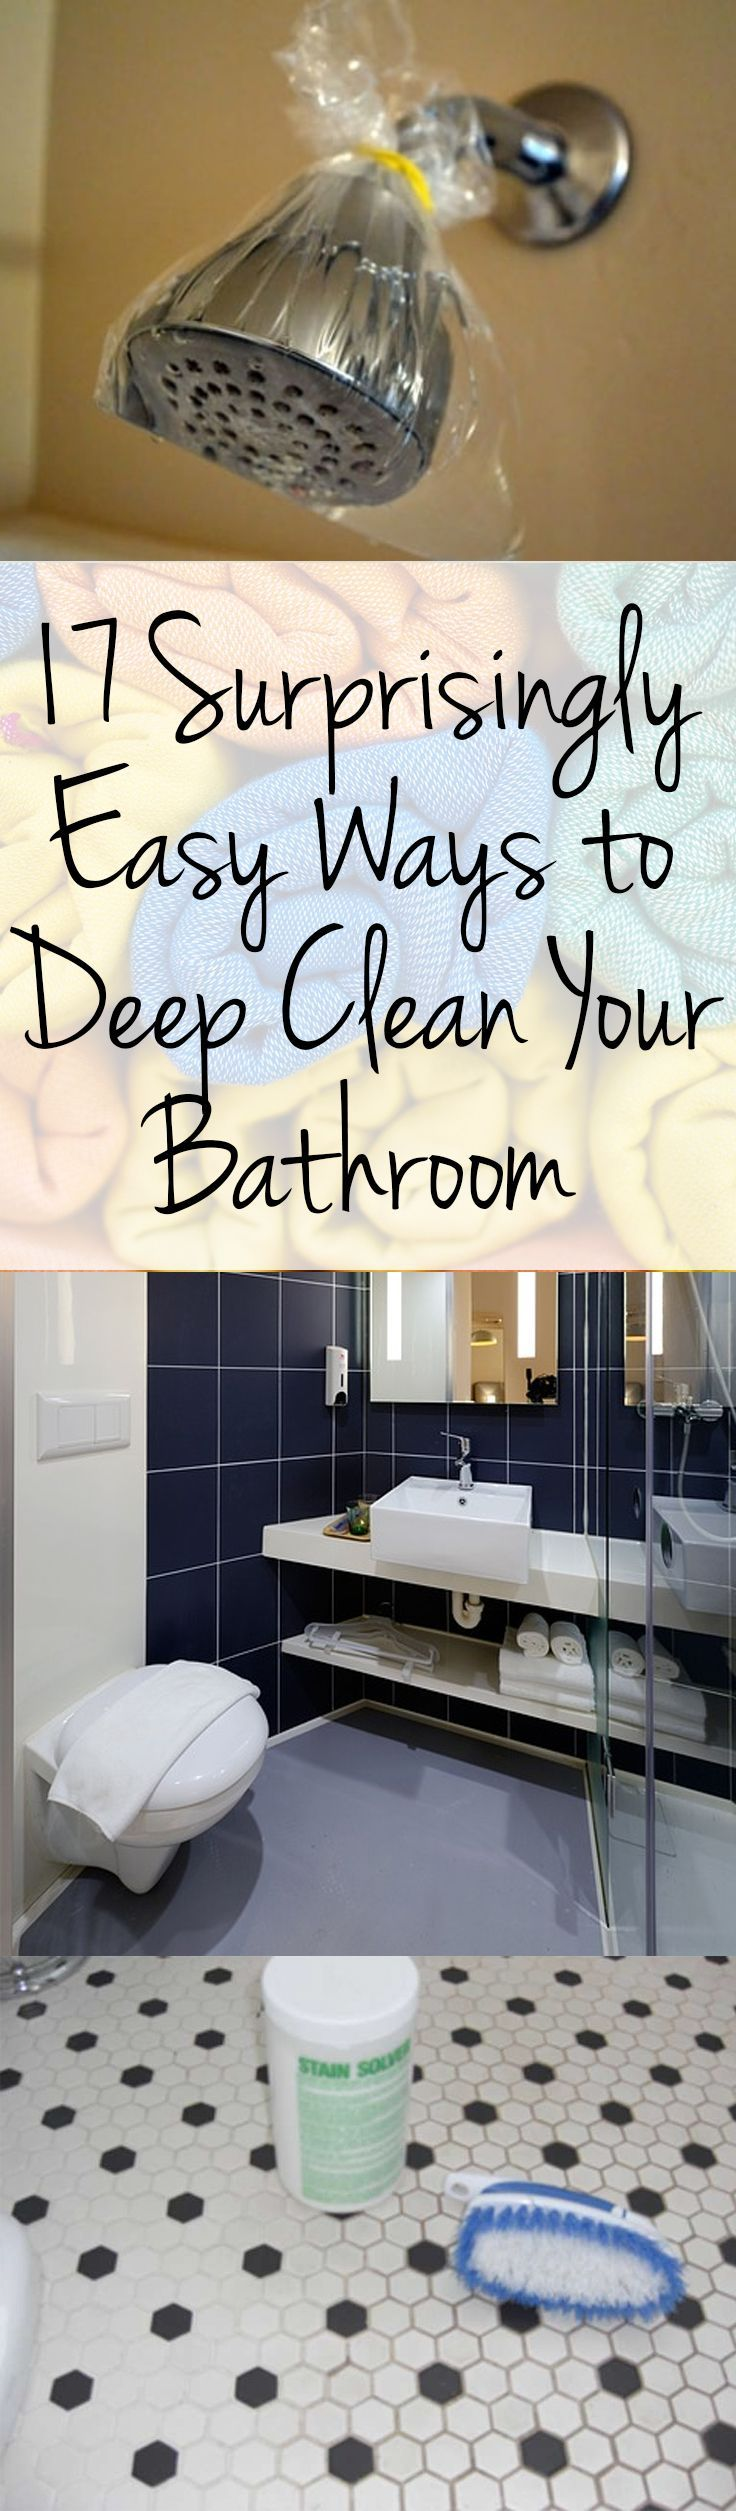 Tips on how to clean your bathroom - 17 Best Ideas About Bathroom Cleaning On Pinterest Bathroom Cleaning Tips Cleaning Solutions And Cleaning Hacks